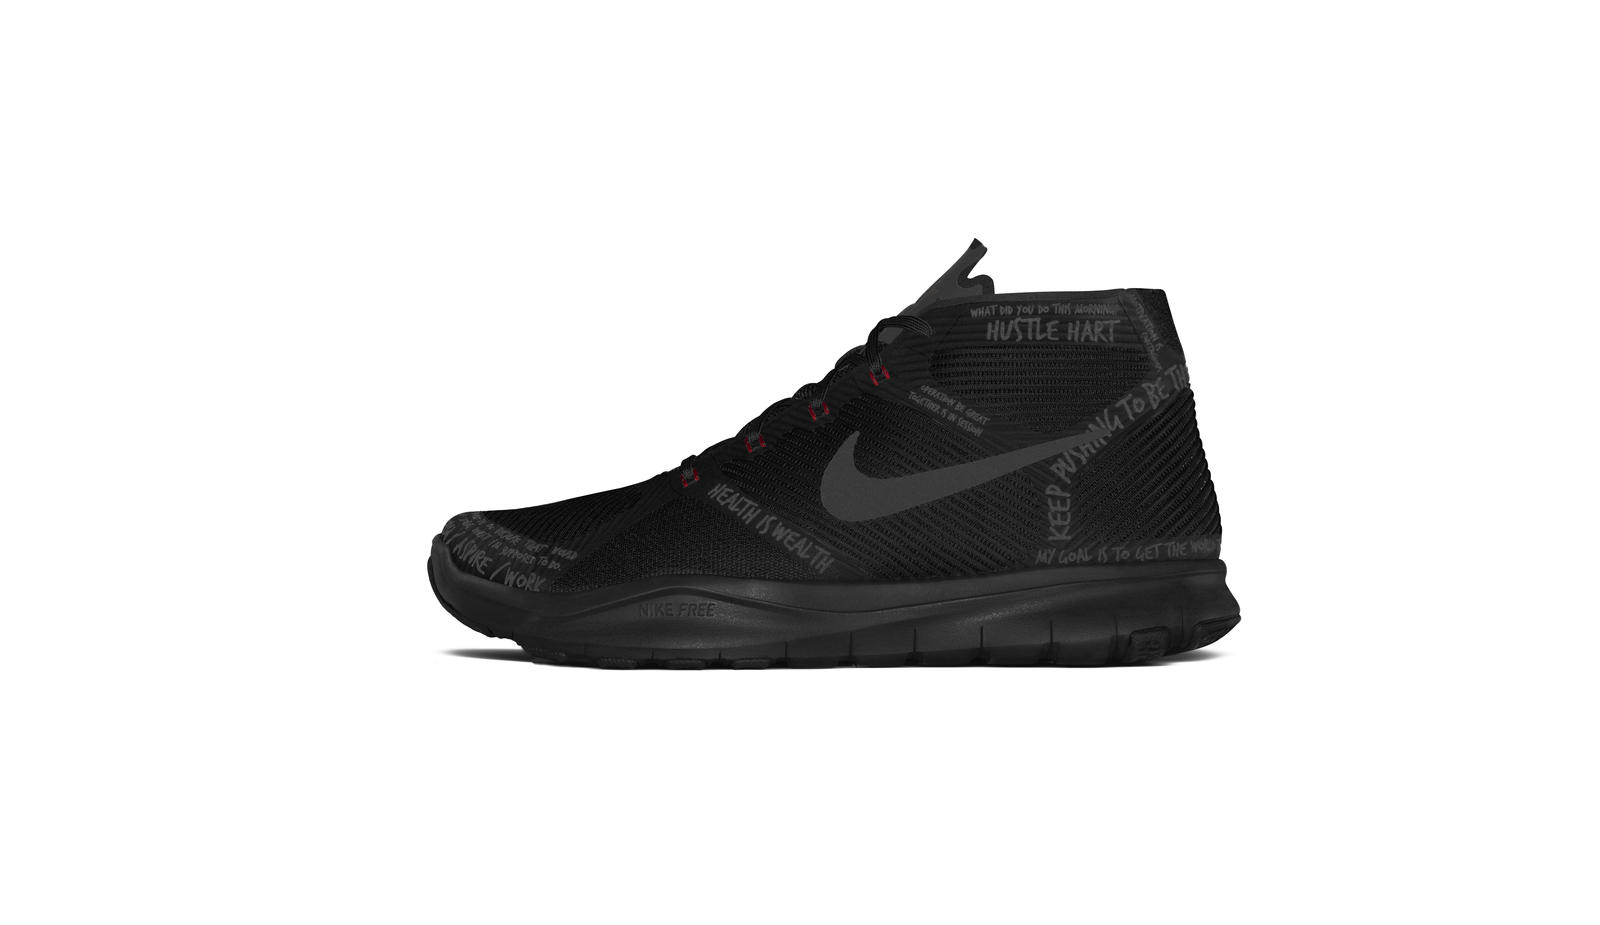 light up nike shoes for dickinson electronic archives tap into kevin hart s instincts nike news 223